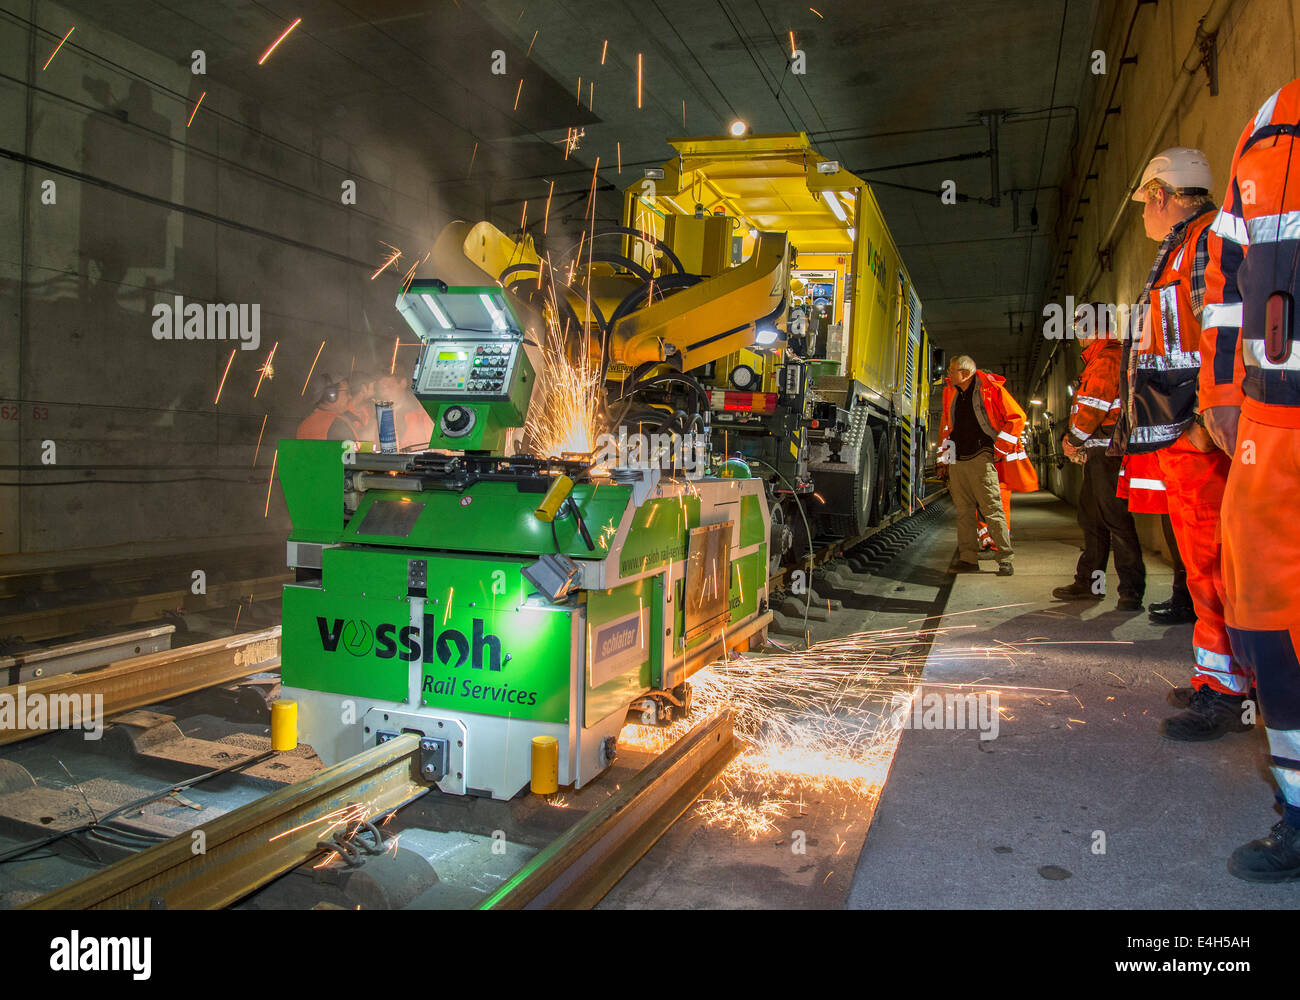 Welding machine of Vossloh Rail Services welding newly laid railroad tracks in a tunnel. Stock Photo